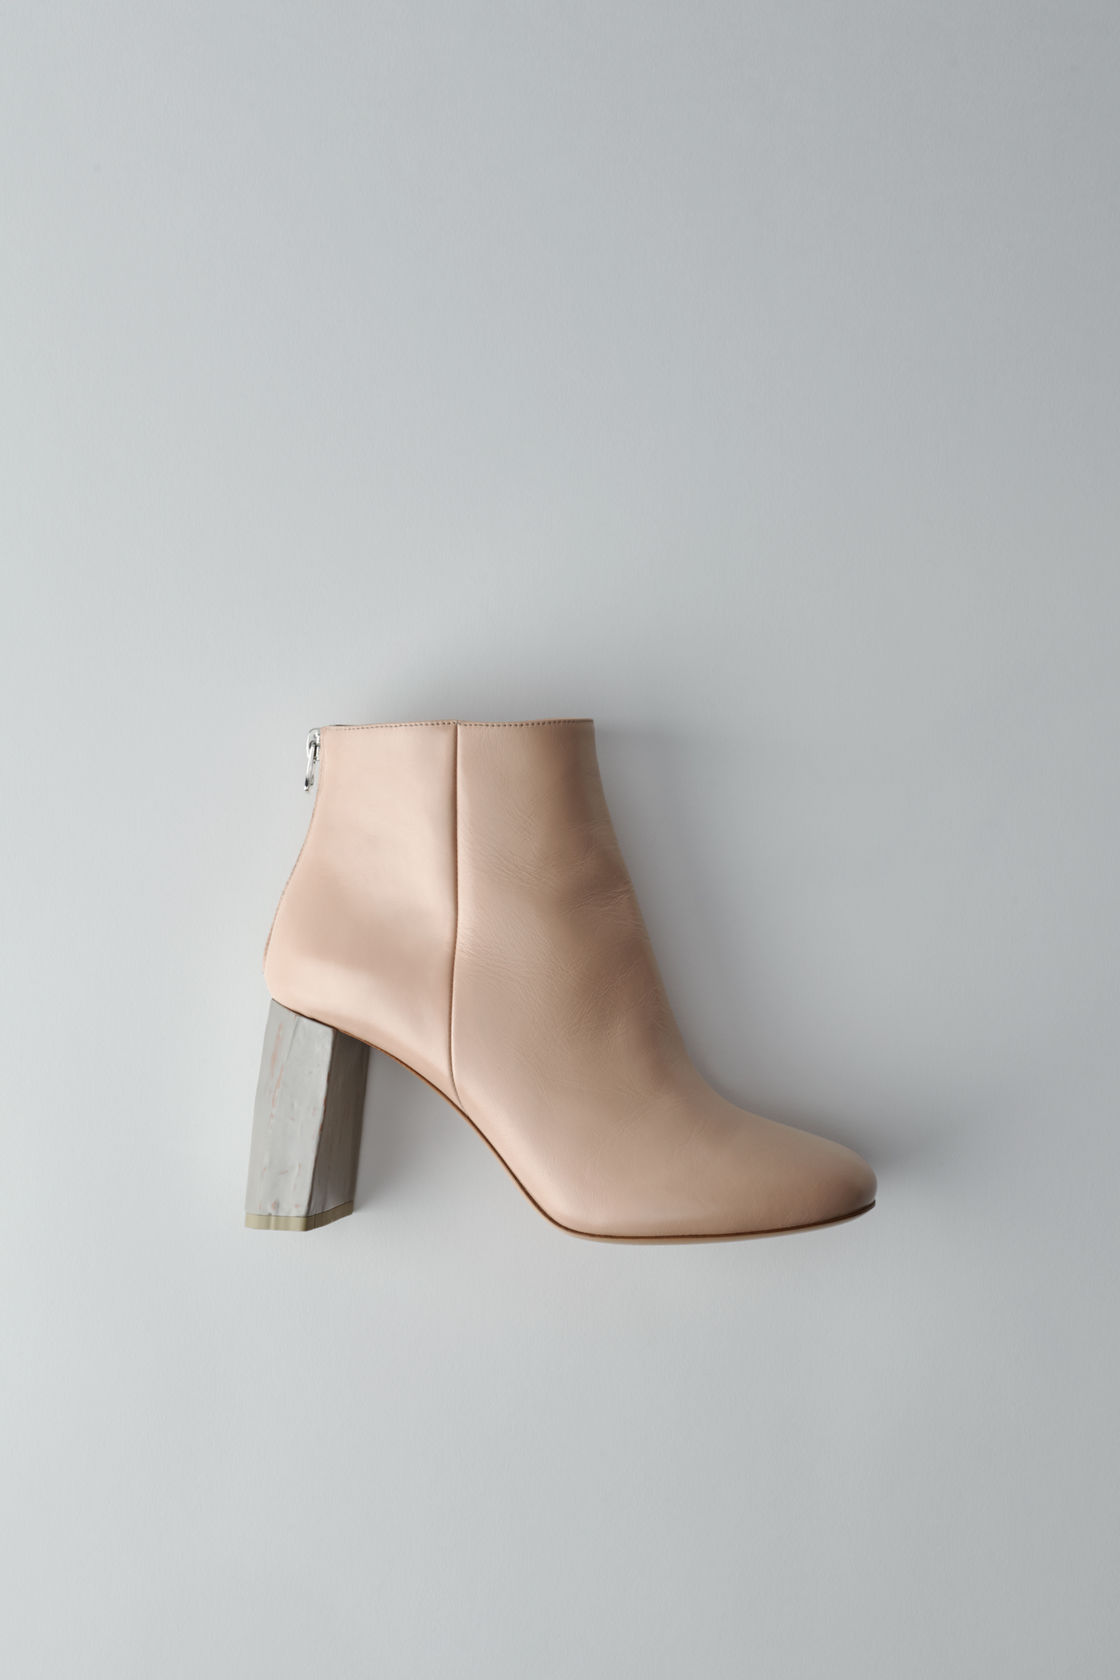 Acne Studios 1 - Claudine Ankle Boot - Pink